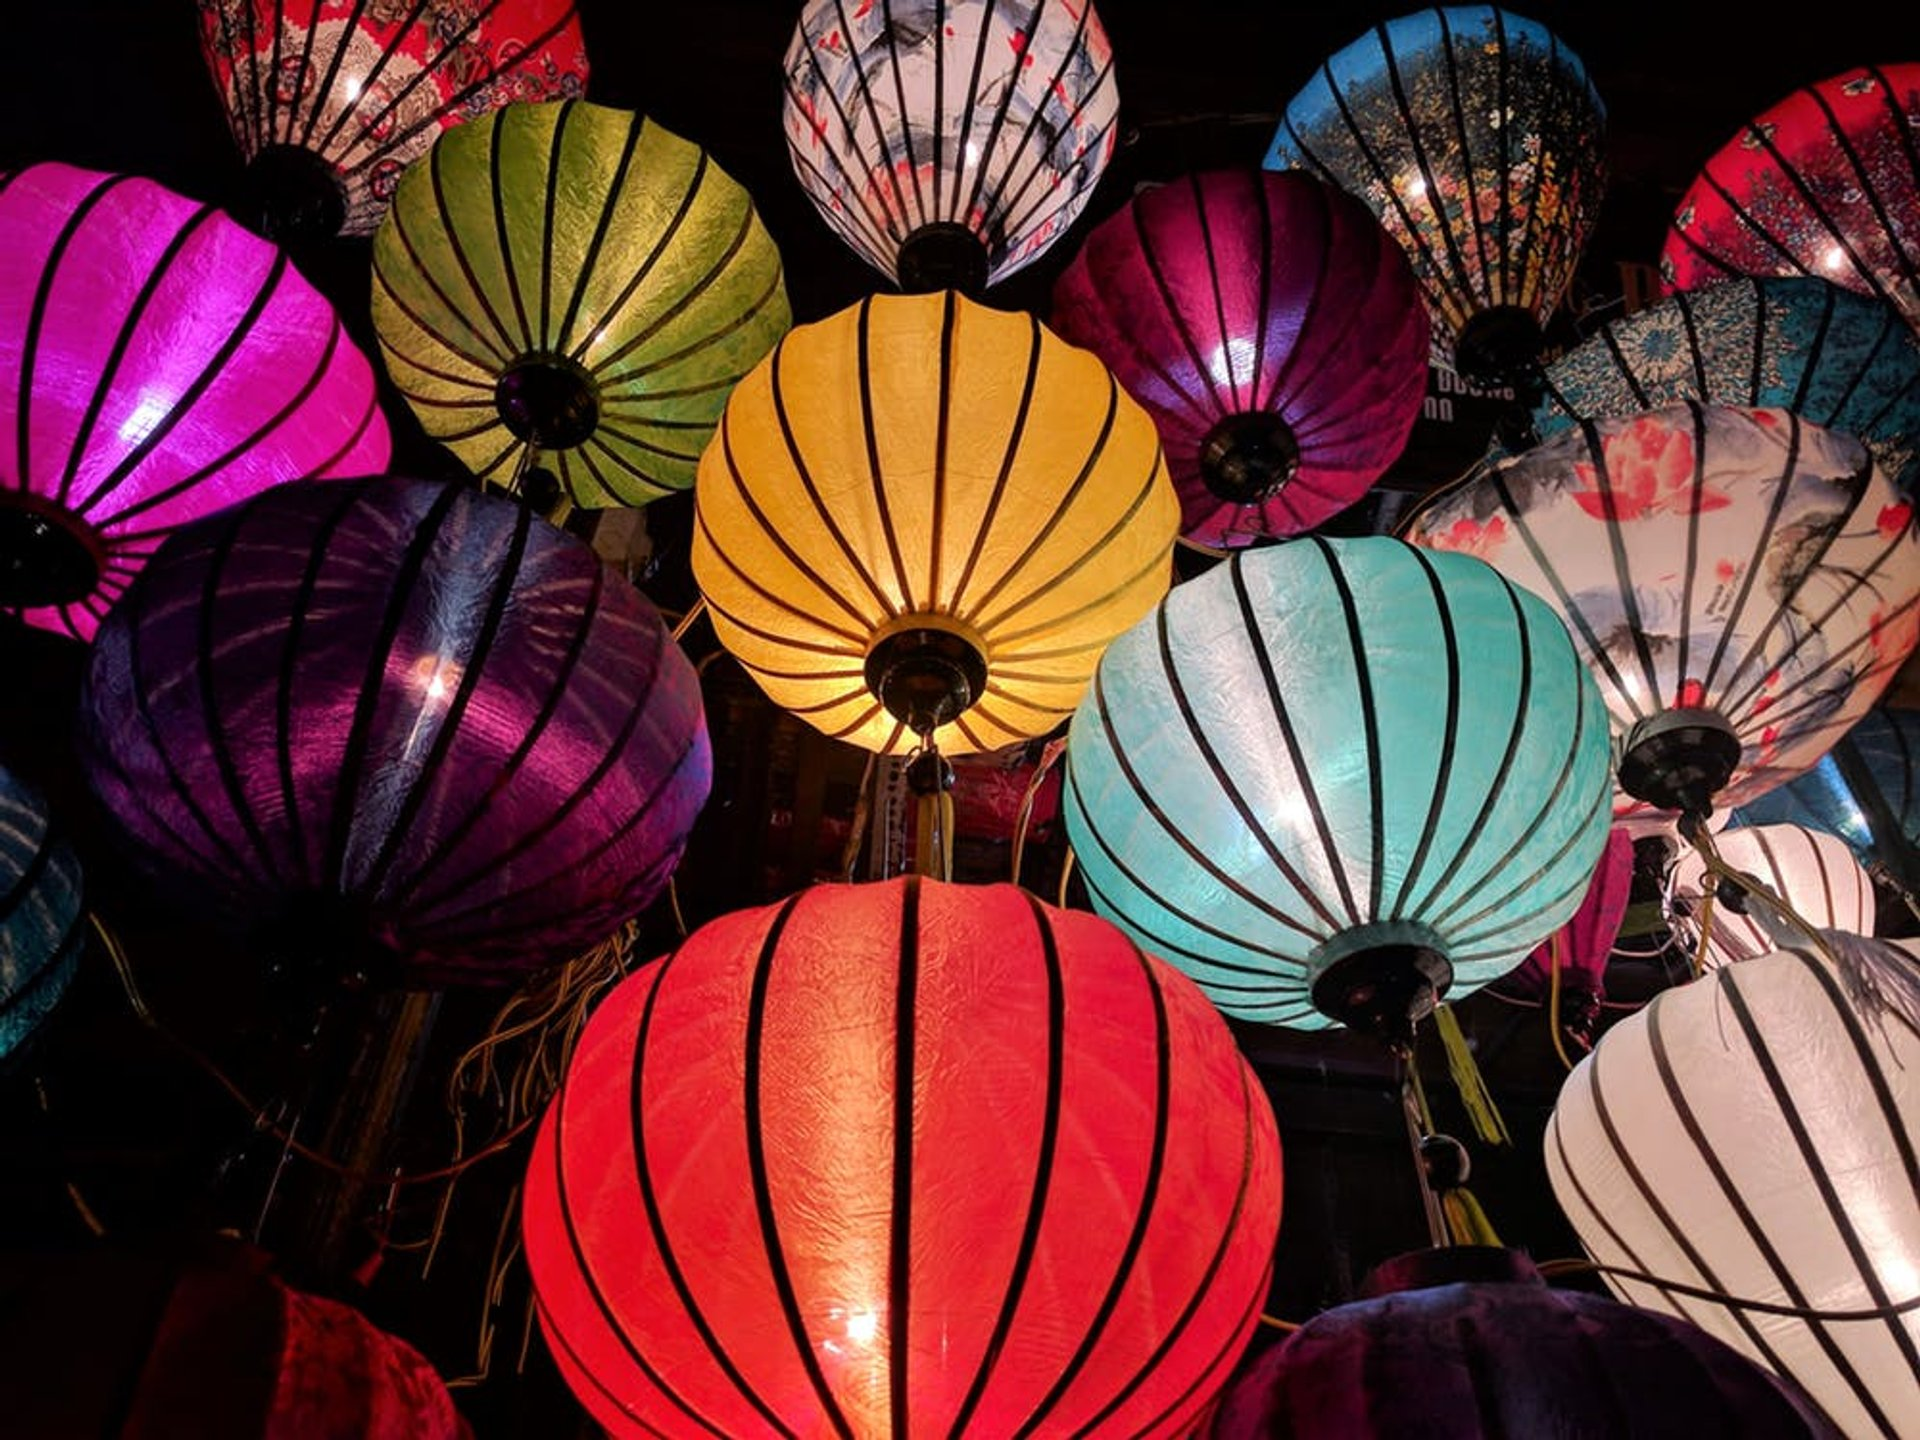 Best time for Lantern Festival in China